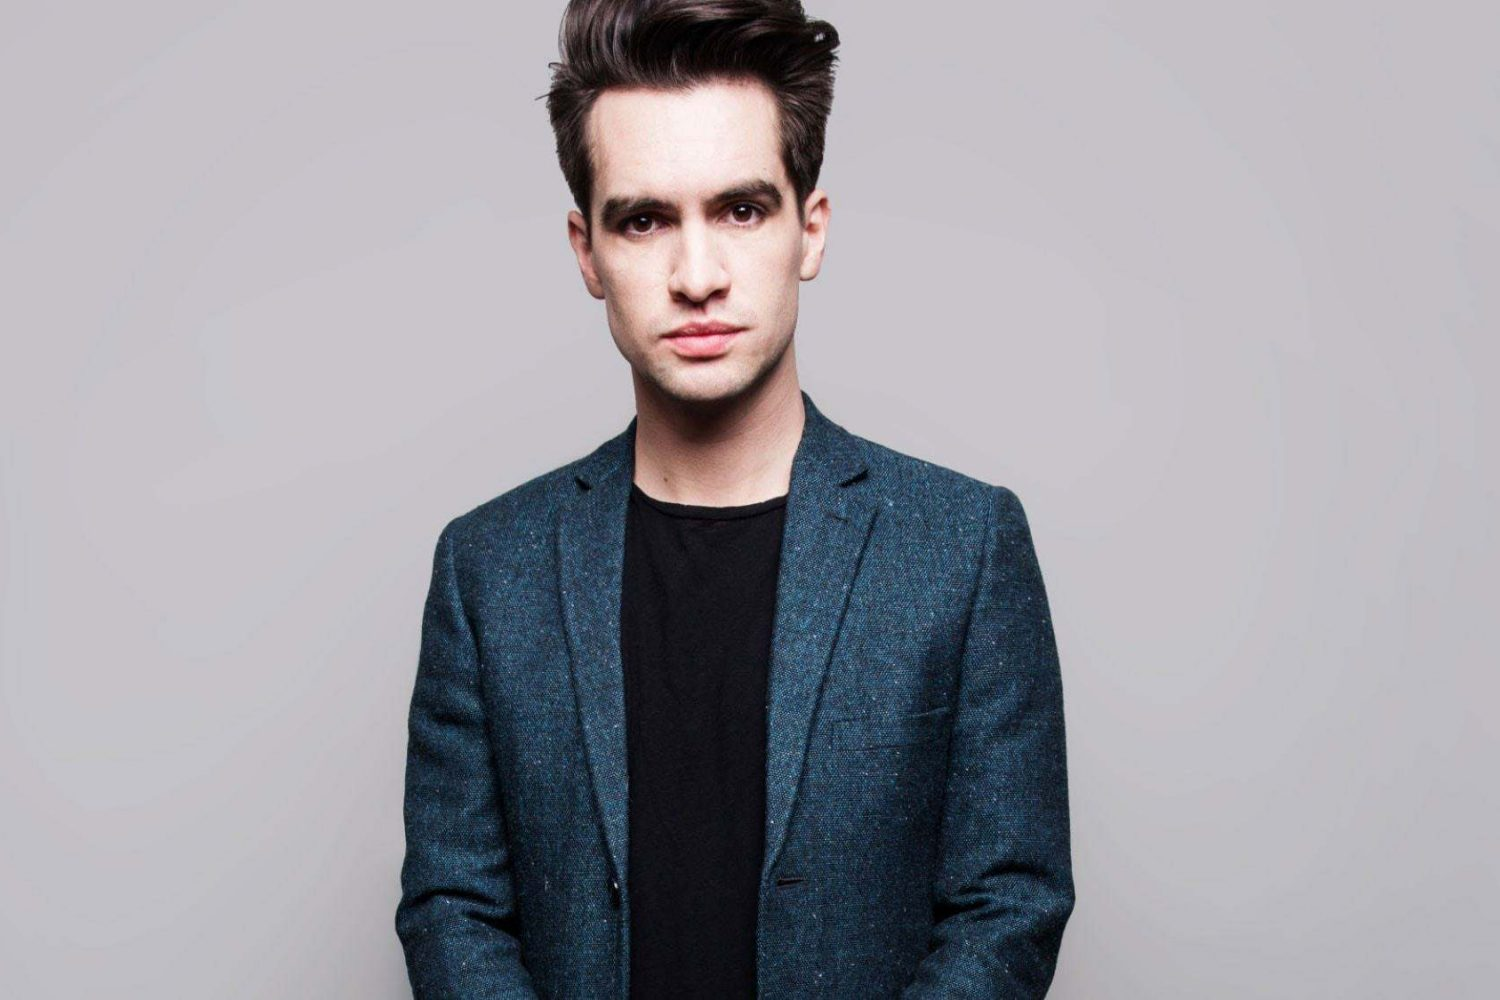 High Quality Halsey Hqhaisey: Yeah, Brendon Urie Is Quite Good At This Whole Broadway